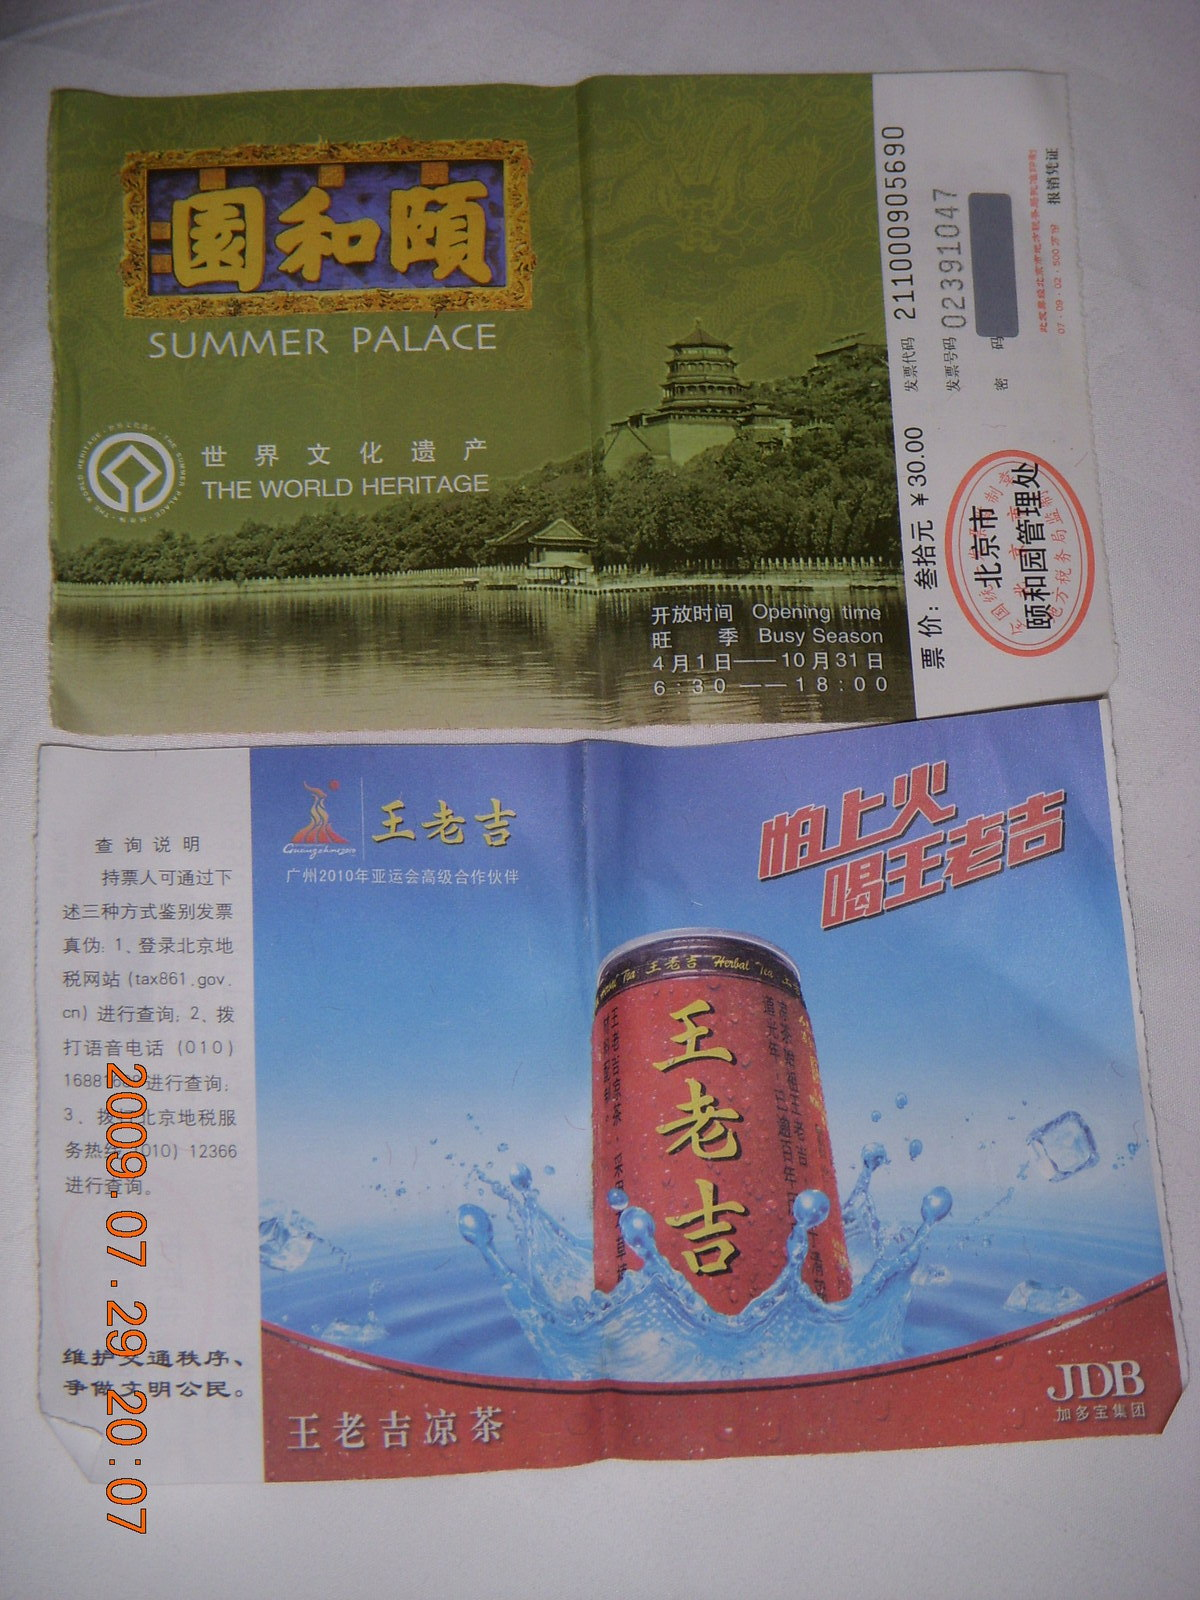 China eclipse - Beijing - Summer Palace ticket - front and back